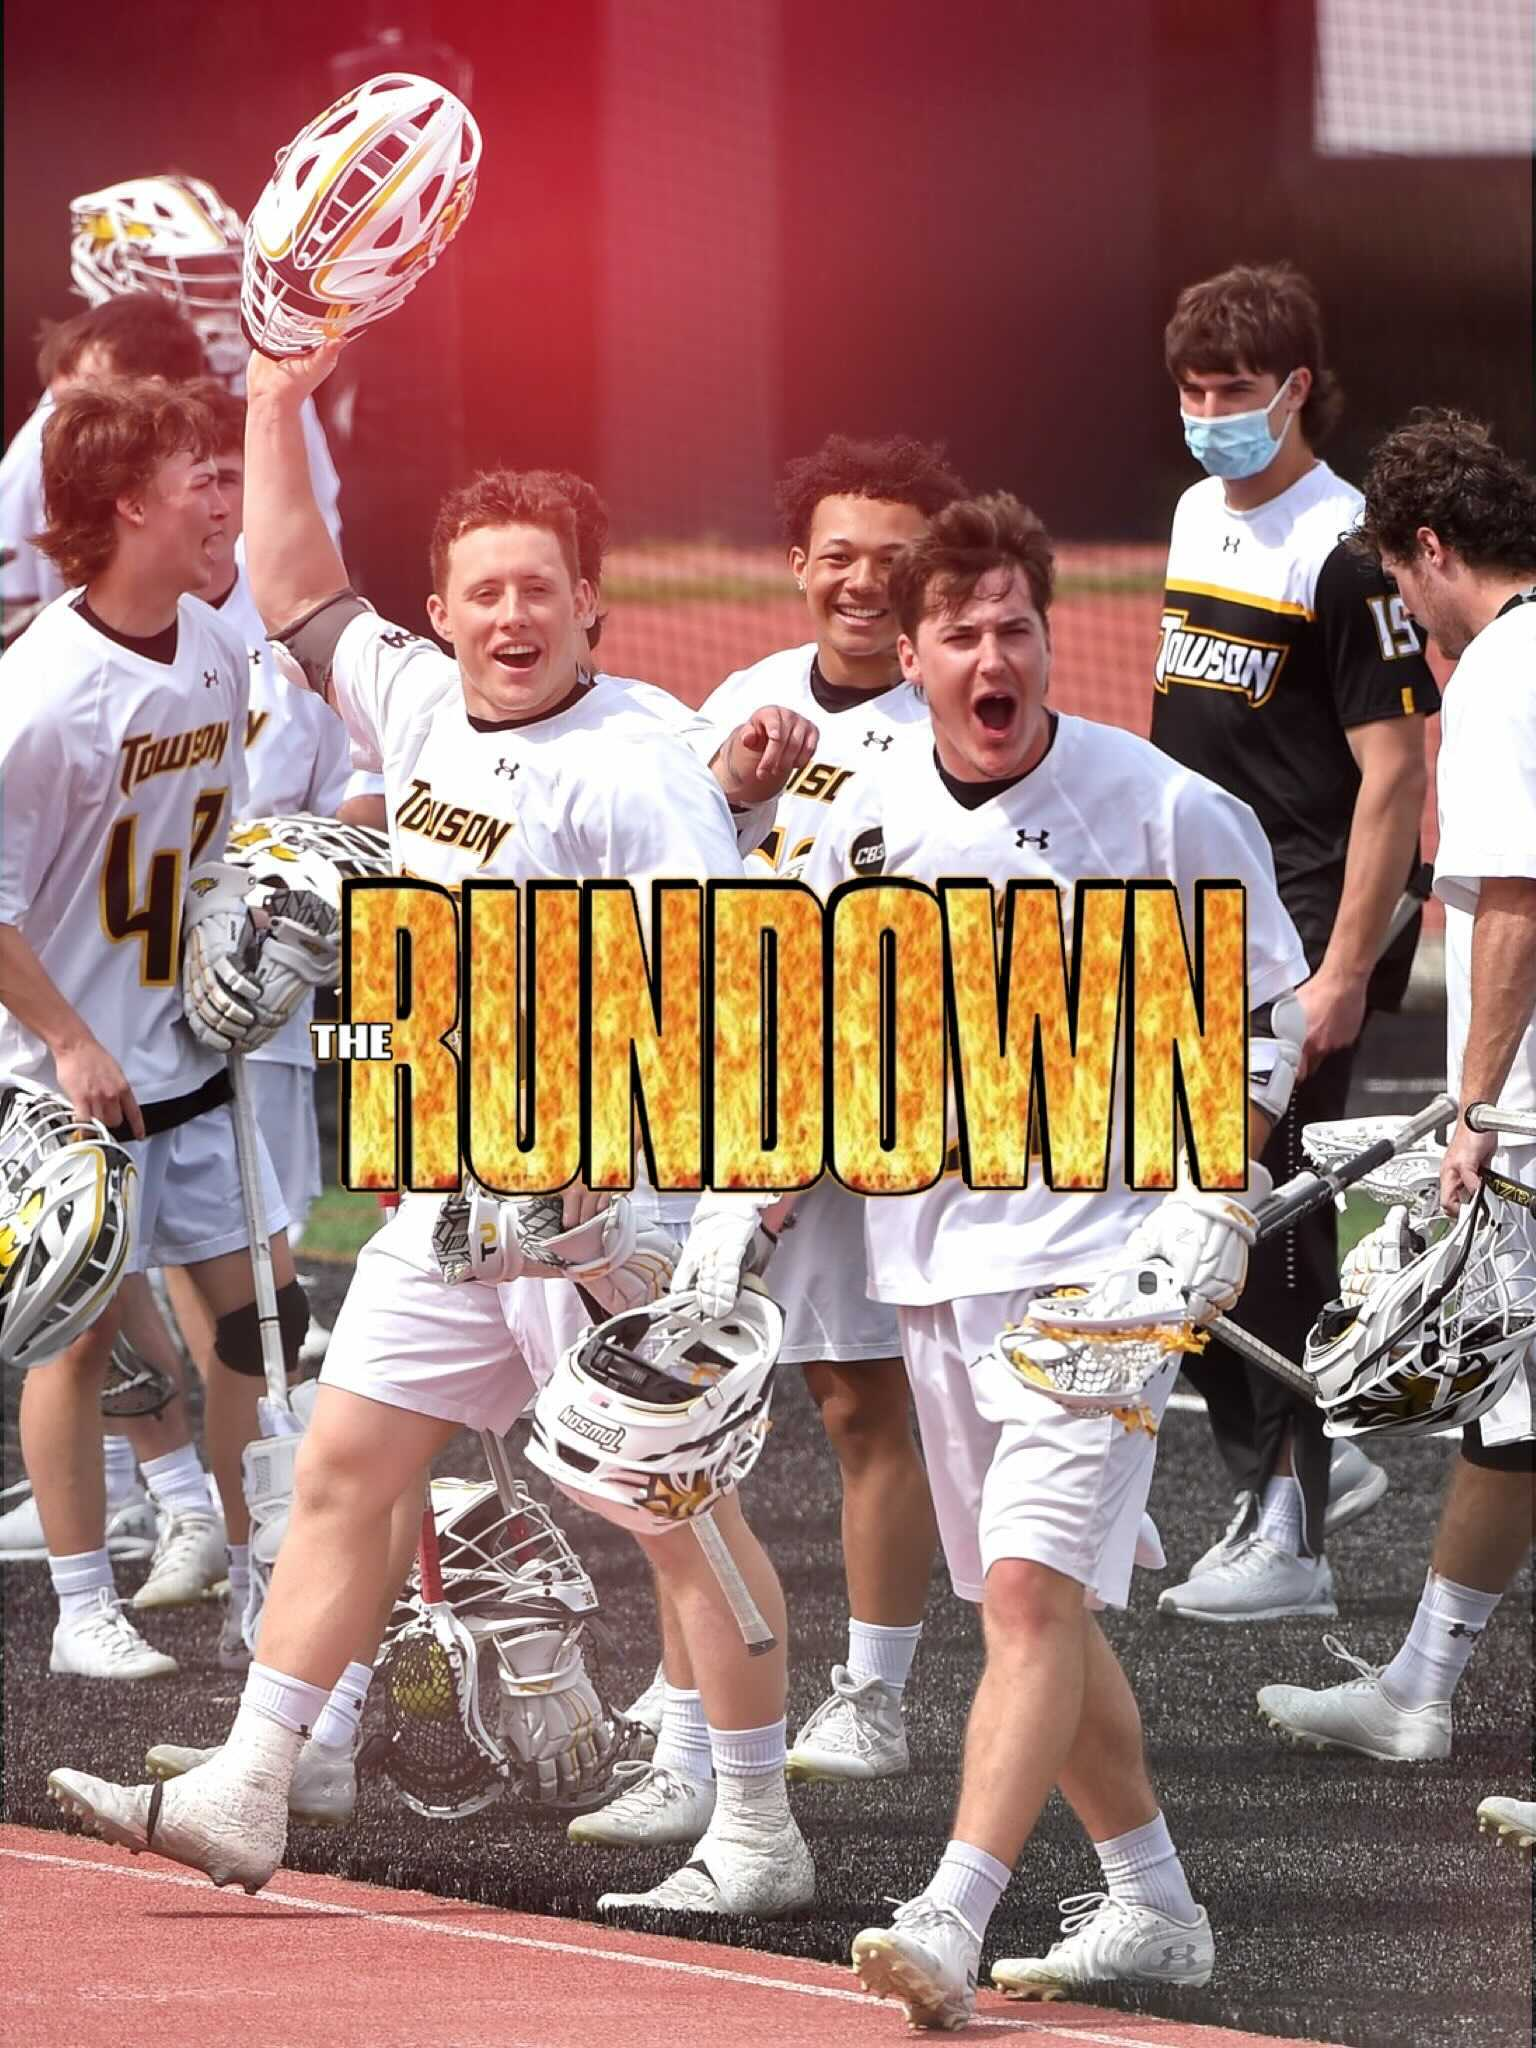 Towson toppled Loyola, Duke and Syracuse played in a thriller, some important results in the America East and more happened in Week 7.